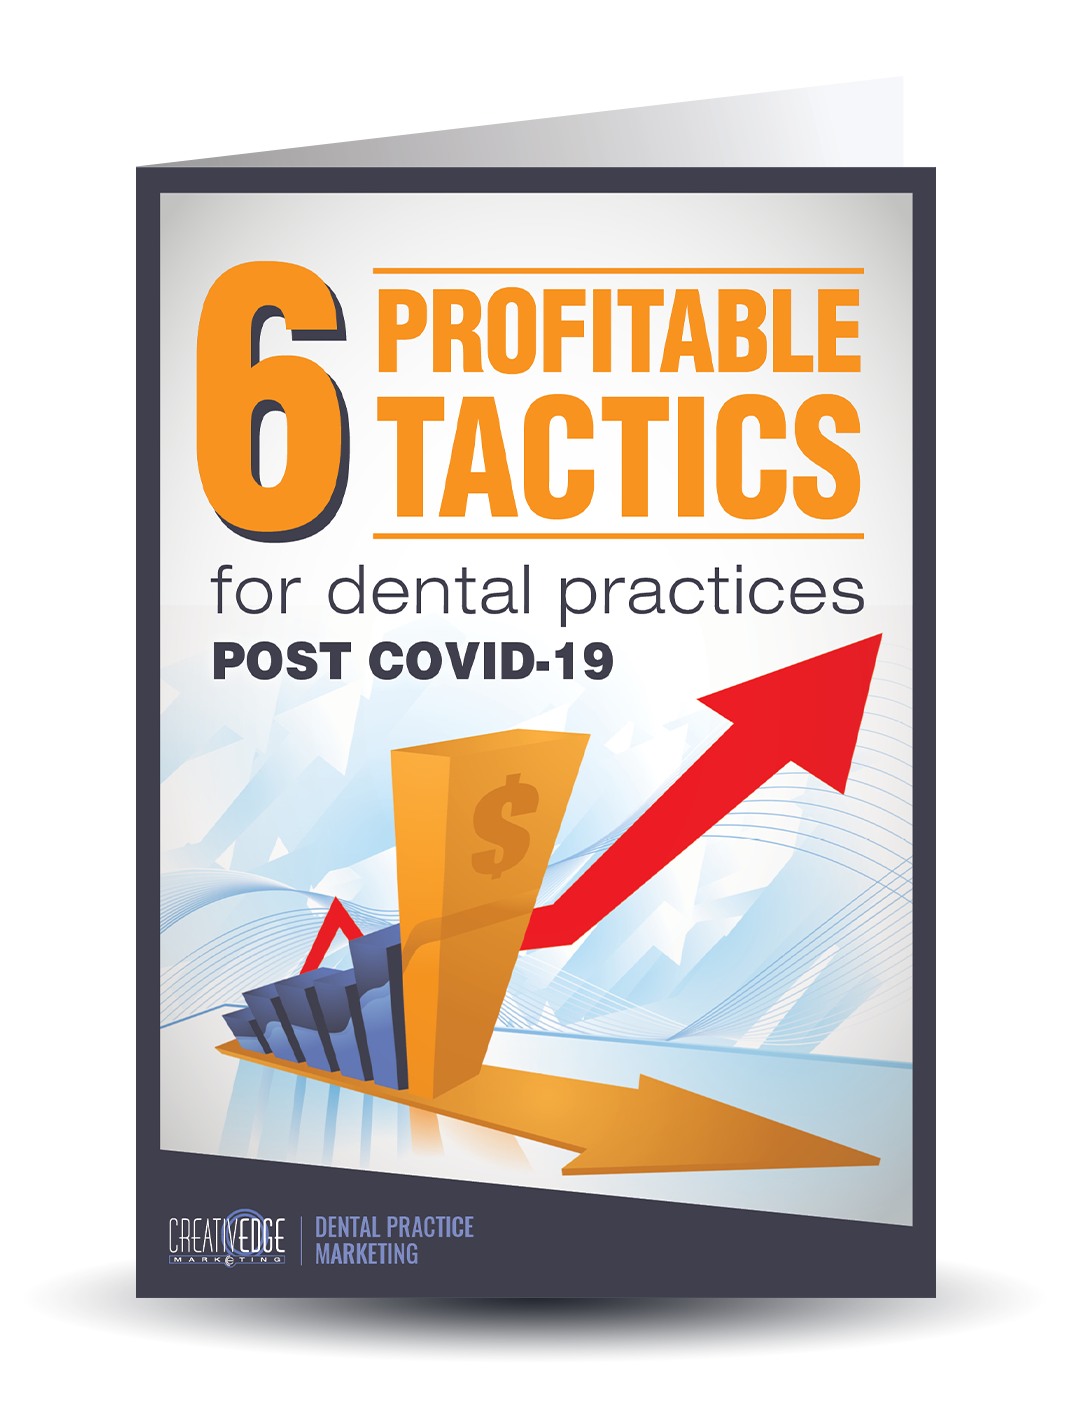 6 Profitable Tactics for Dental Practices Post COVID-19